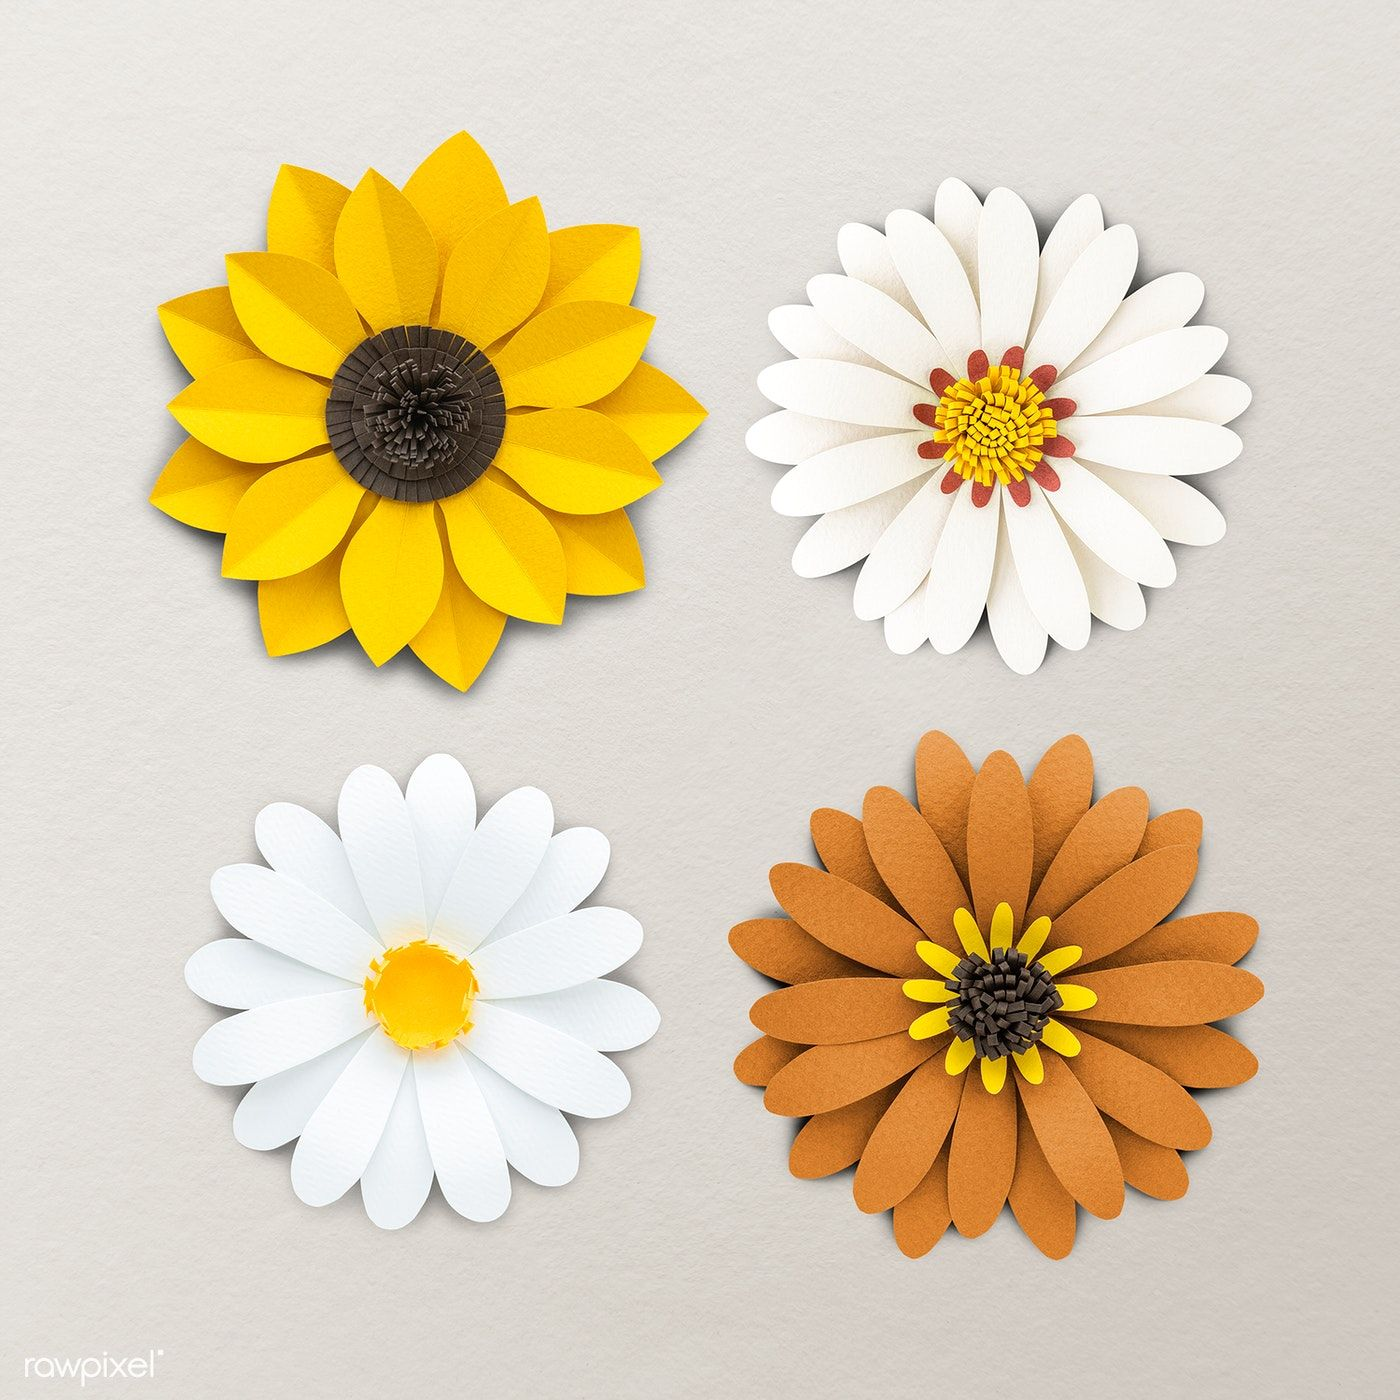 Download Premium Psd Of White And Yellow Flower Paper Craft Set